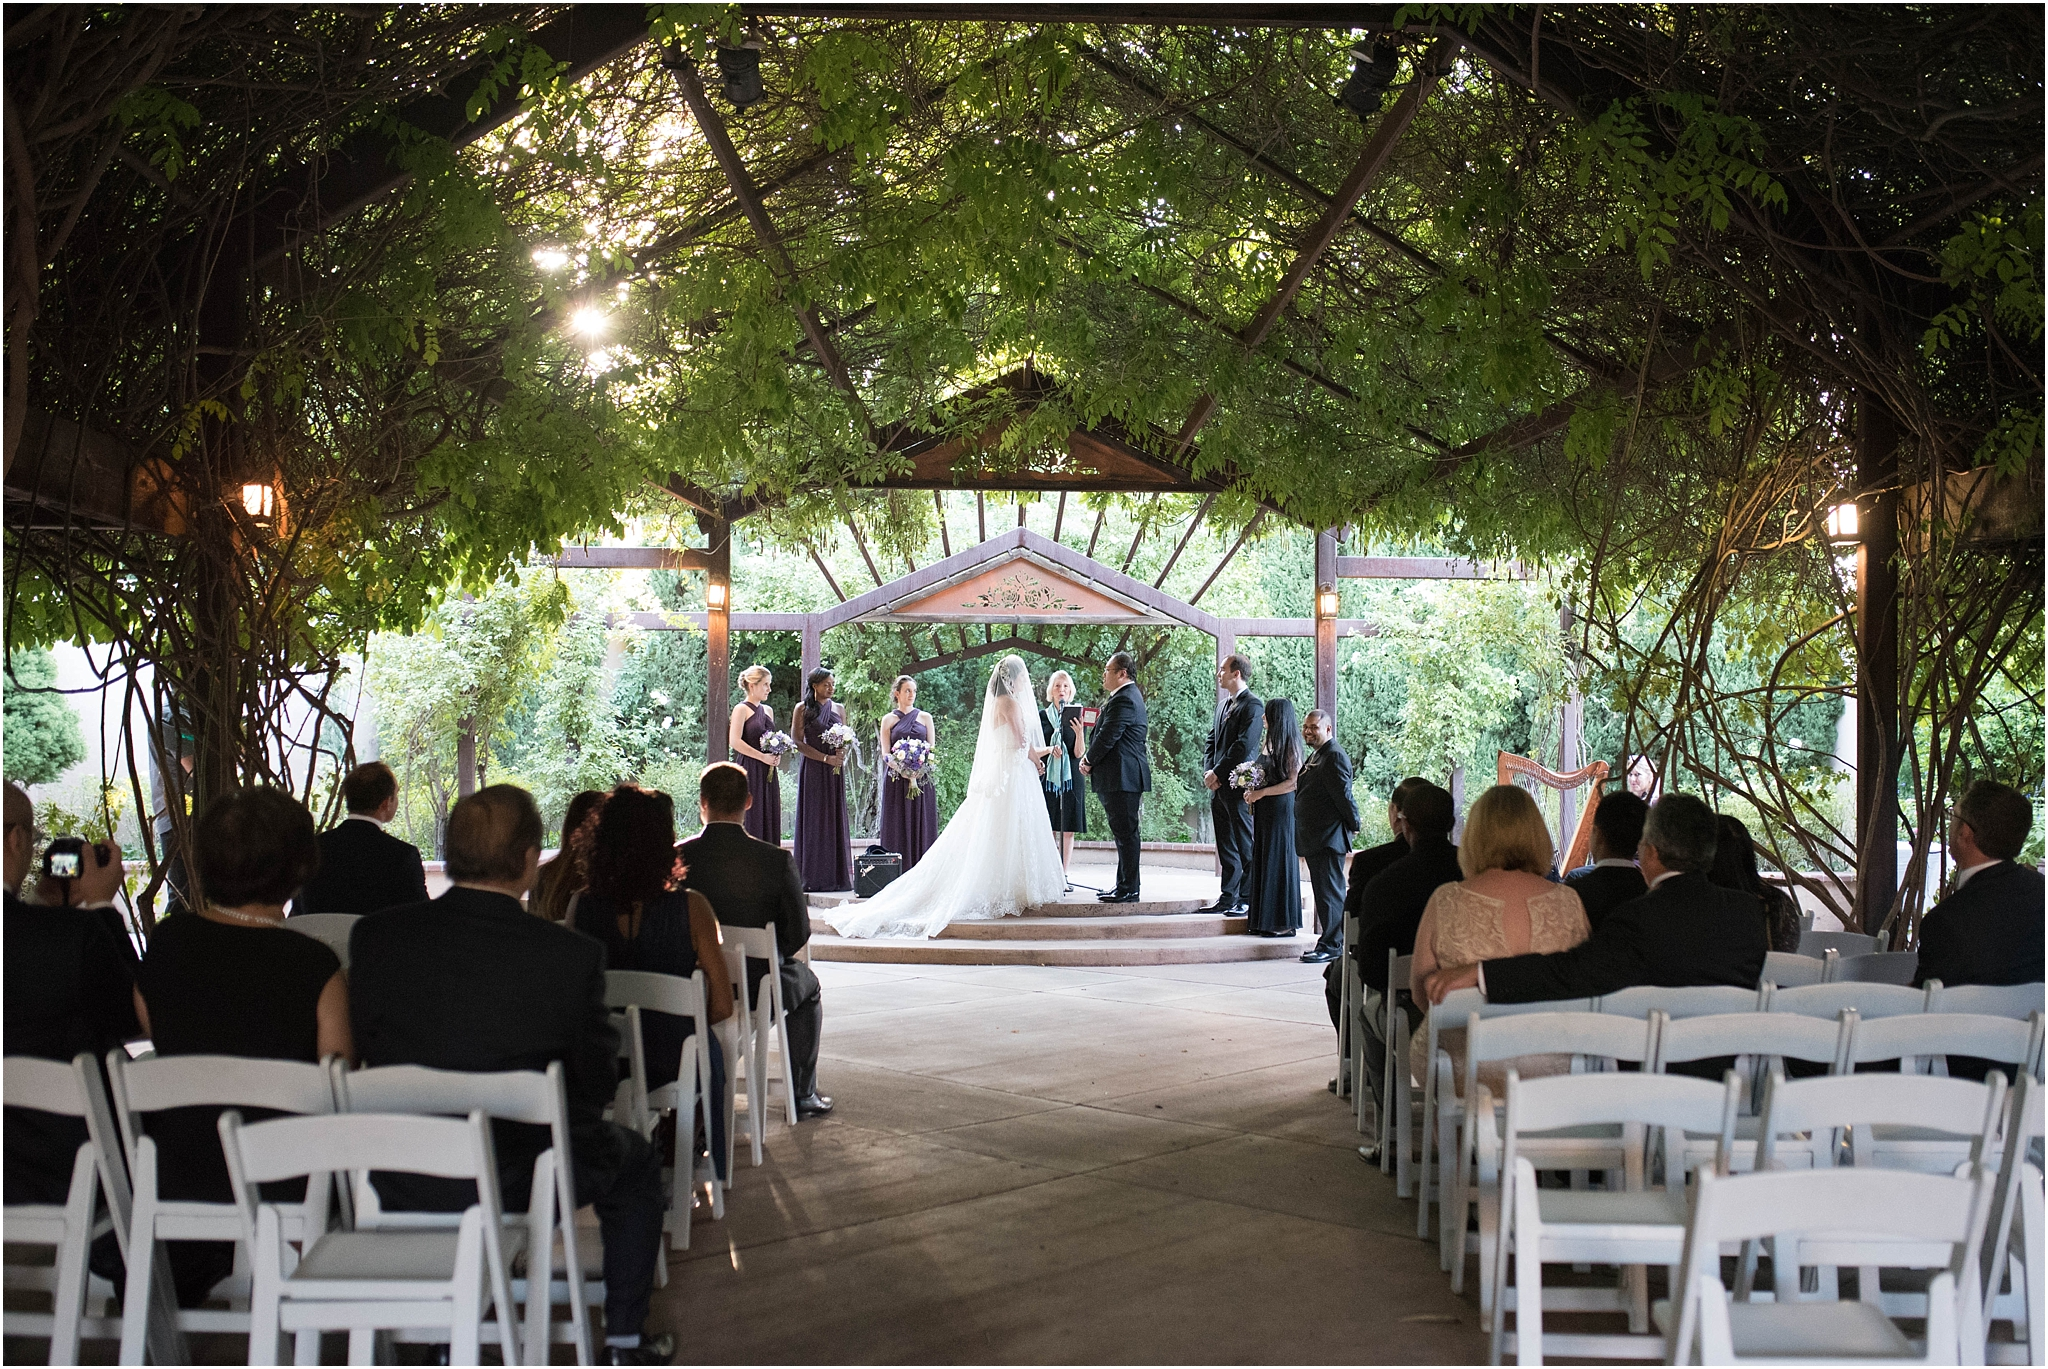 kayla kitts photography - new mexico wedding photographer - albuquerque botanic gardens - hotel albuquerque_0018.jpg